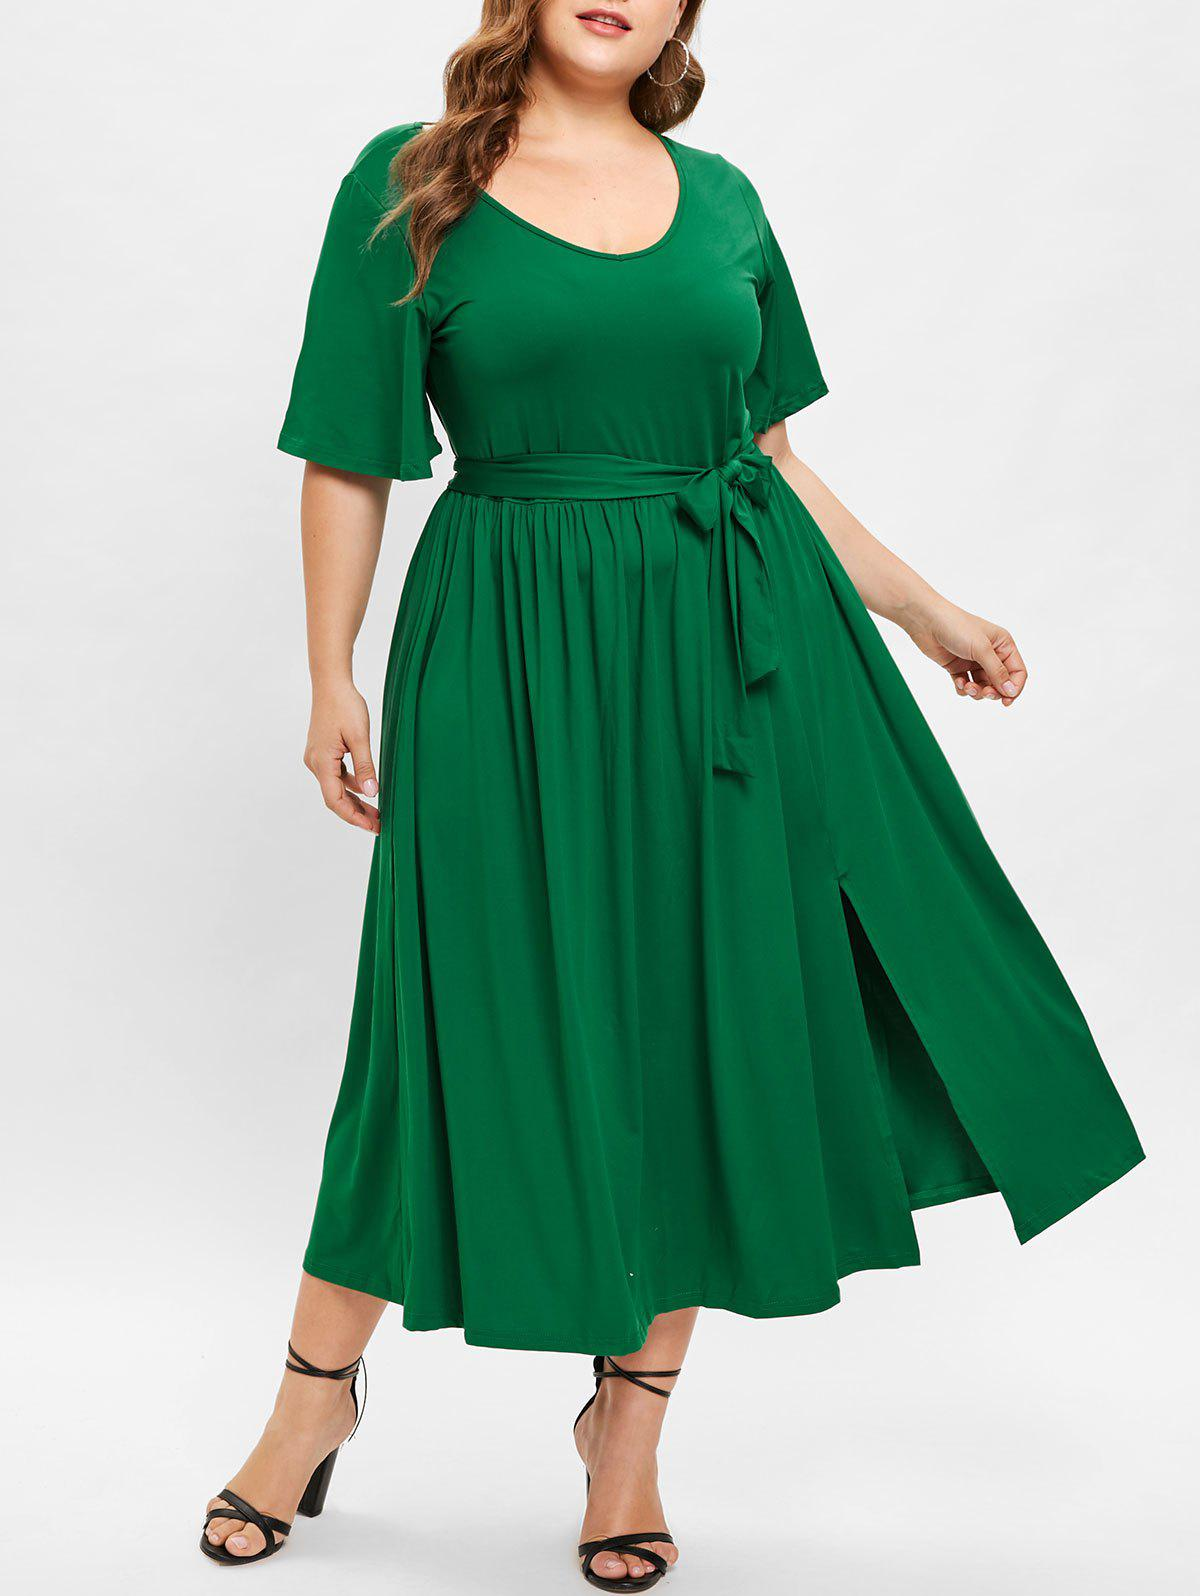 38% OFF] Front Slit Plus Size Belted Mid Calf Dress | Rosegal